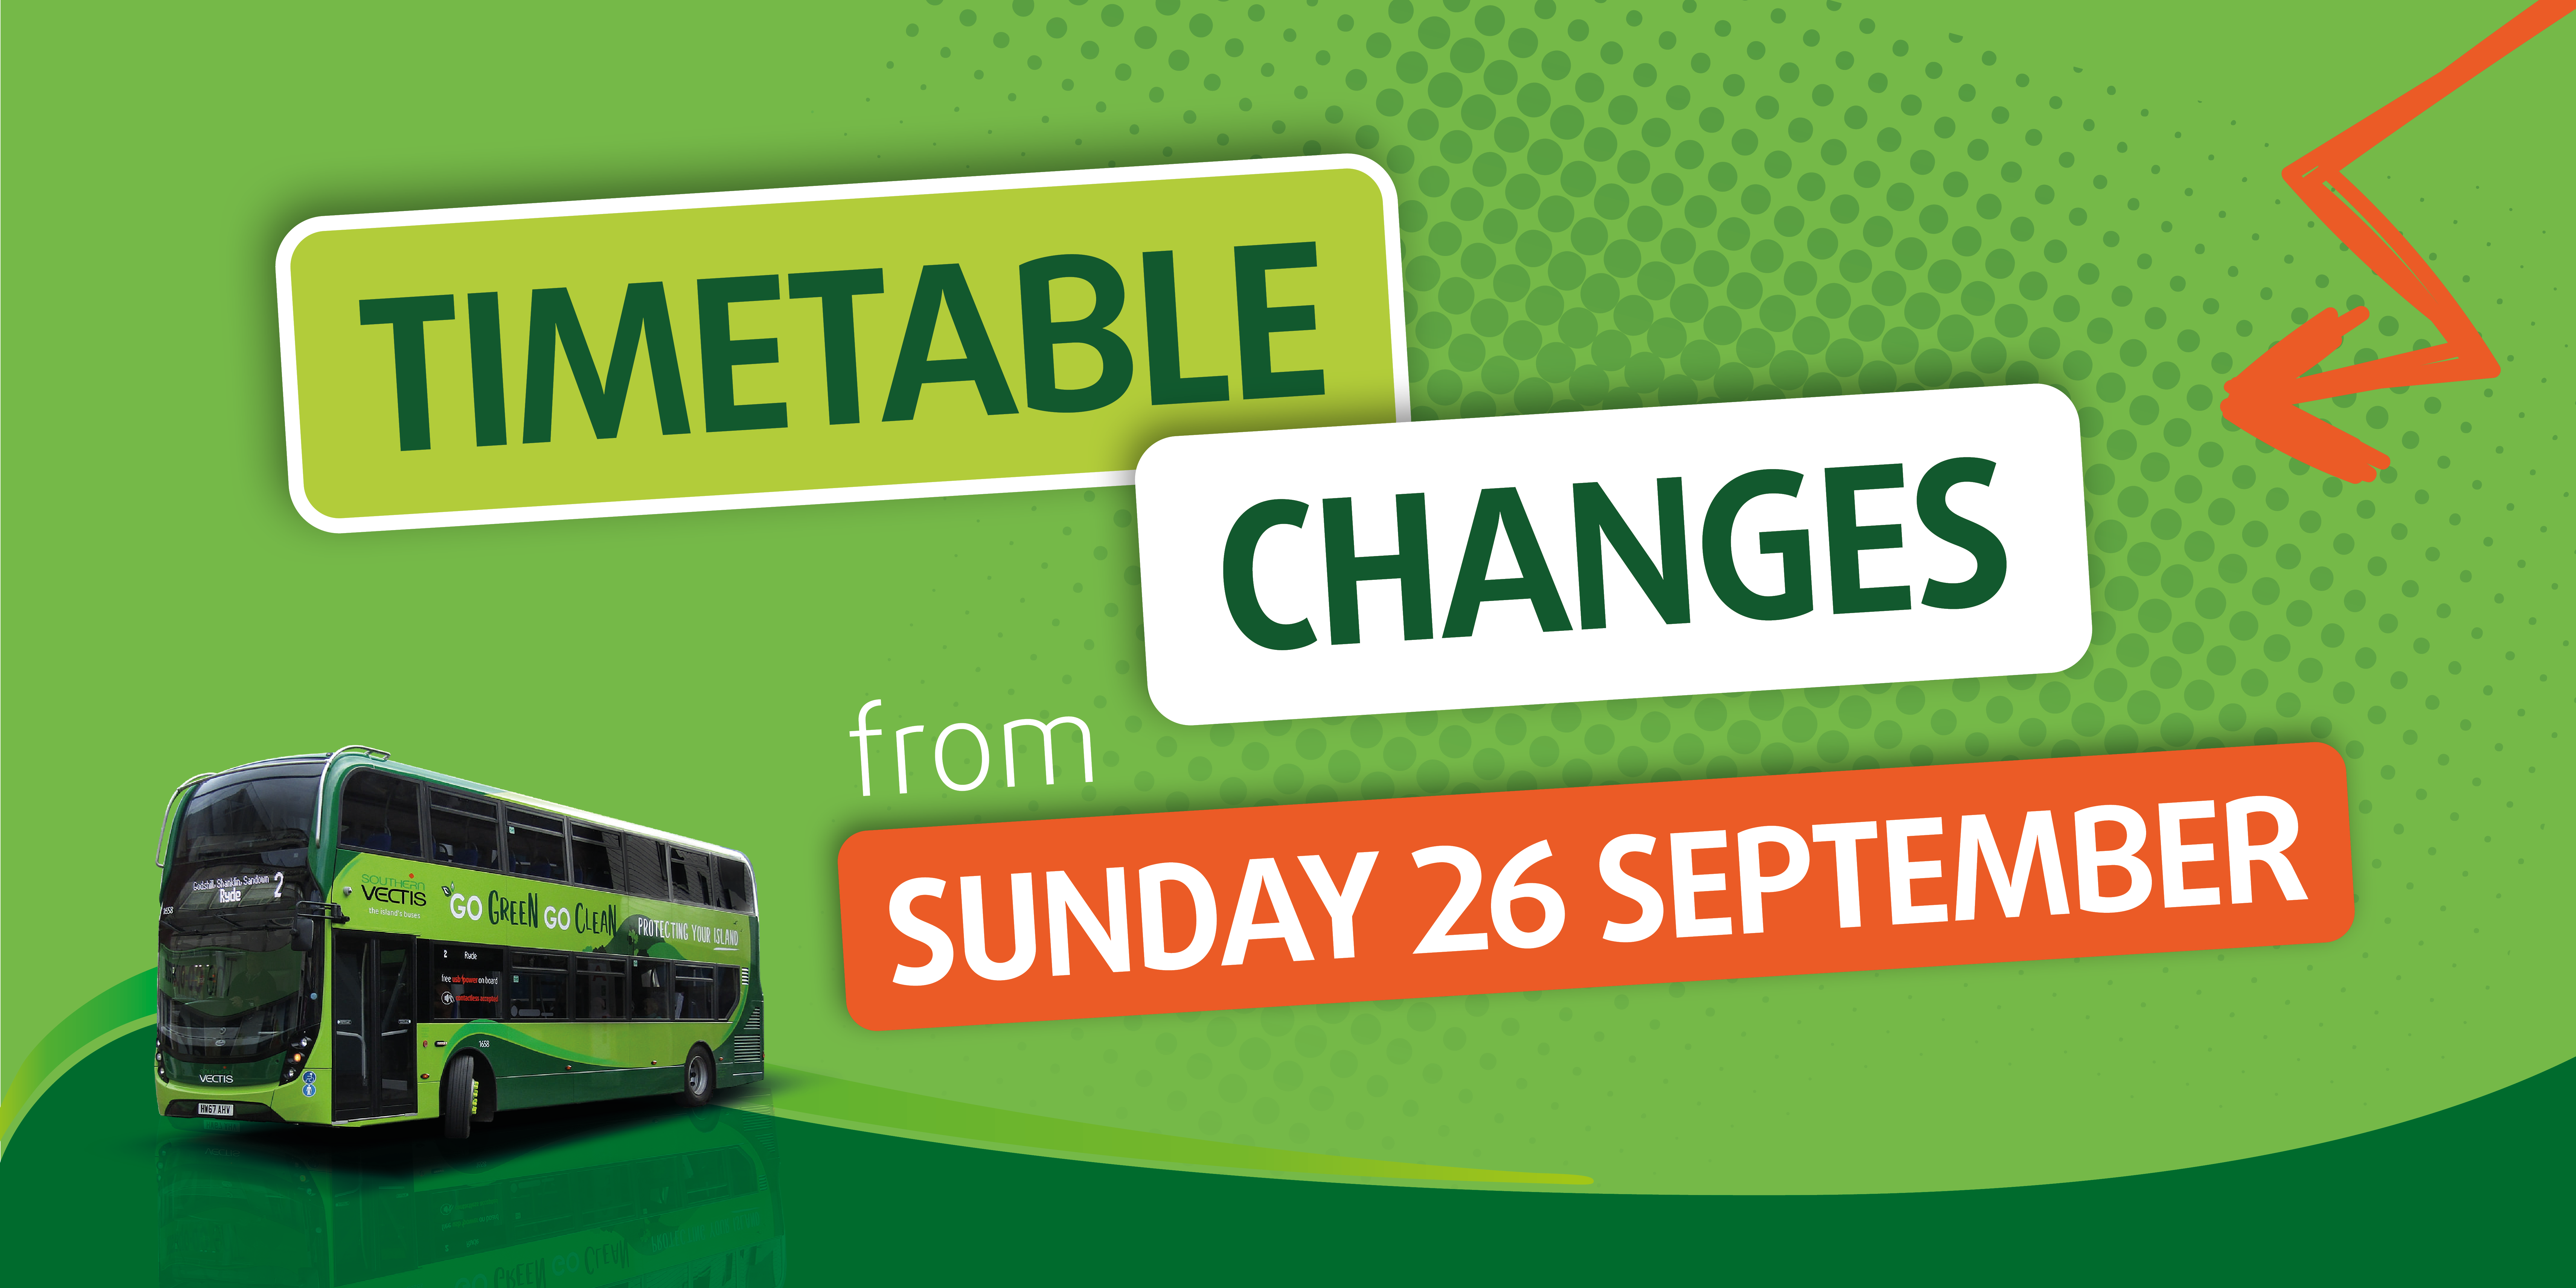 timetable changes from sunday 26 september